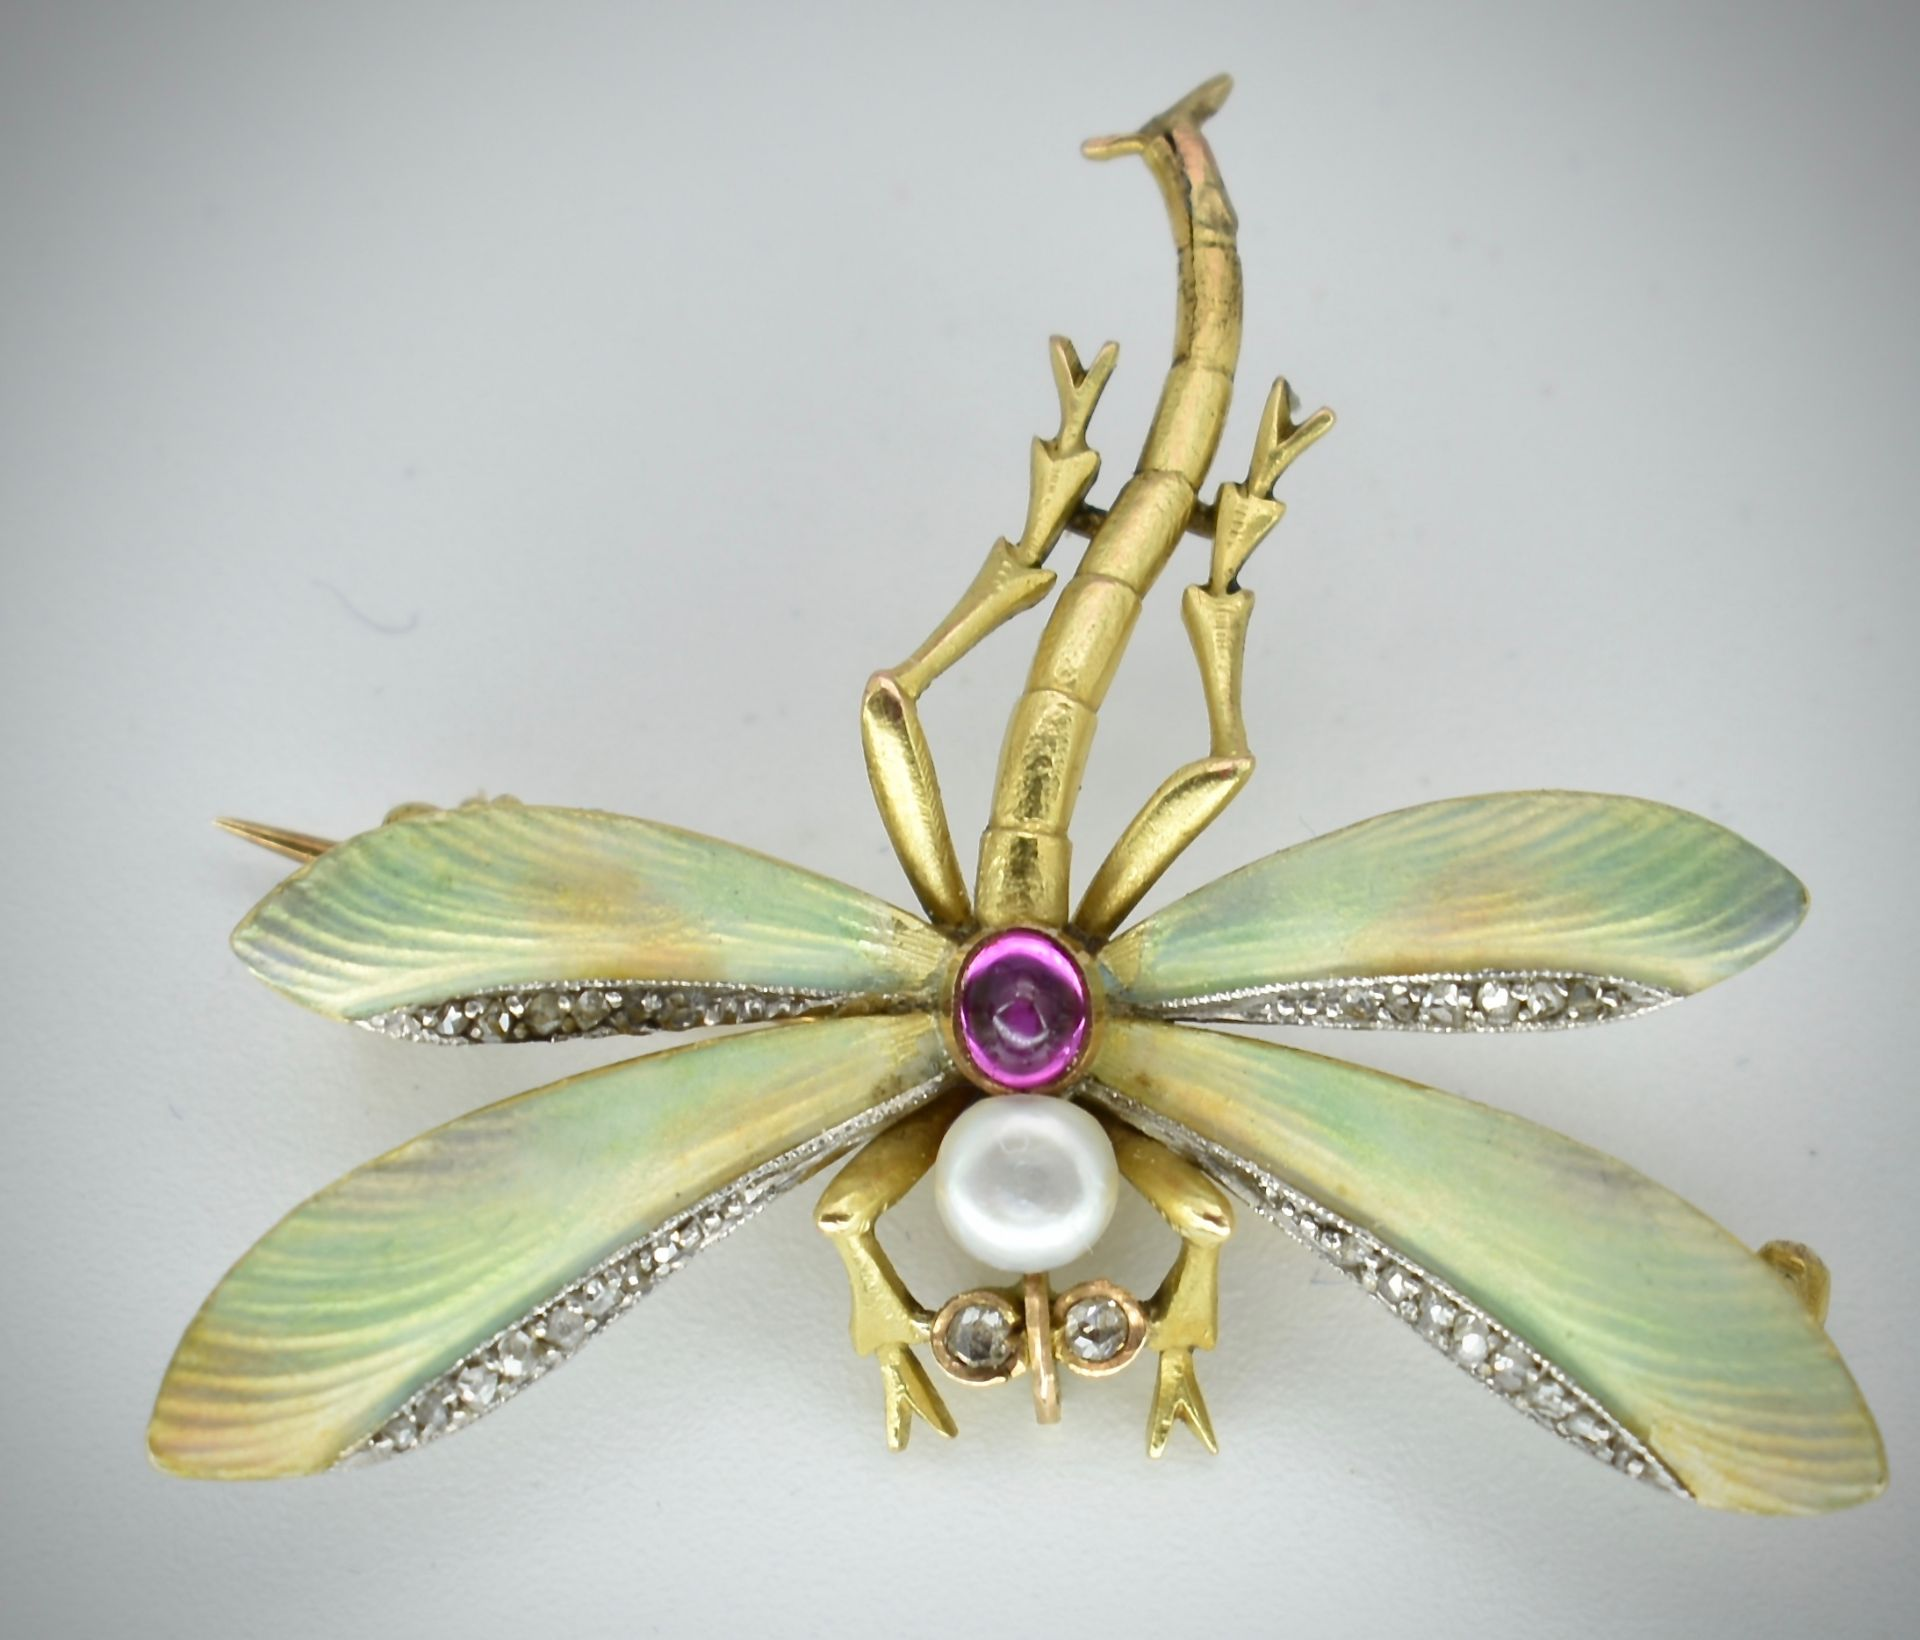 14ct Gold Ruby Diamond & Pearl Dragonfly Brooch - Image 2 of 5